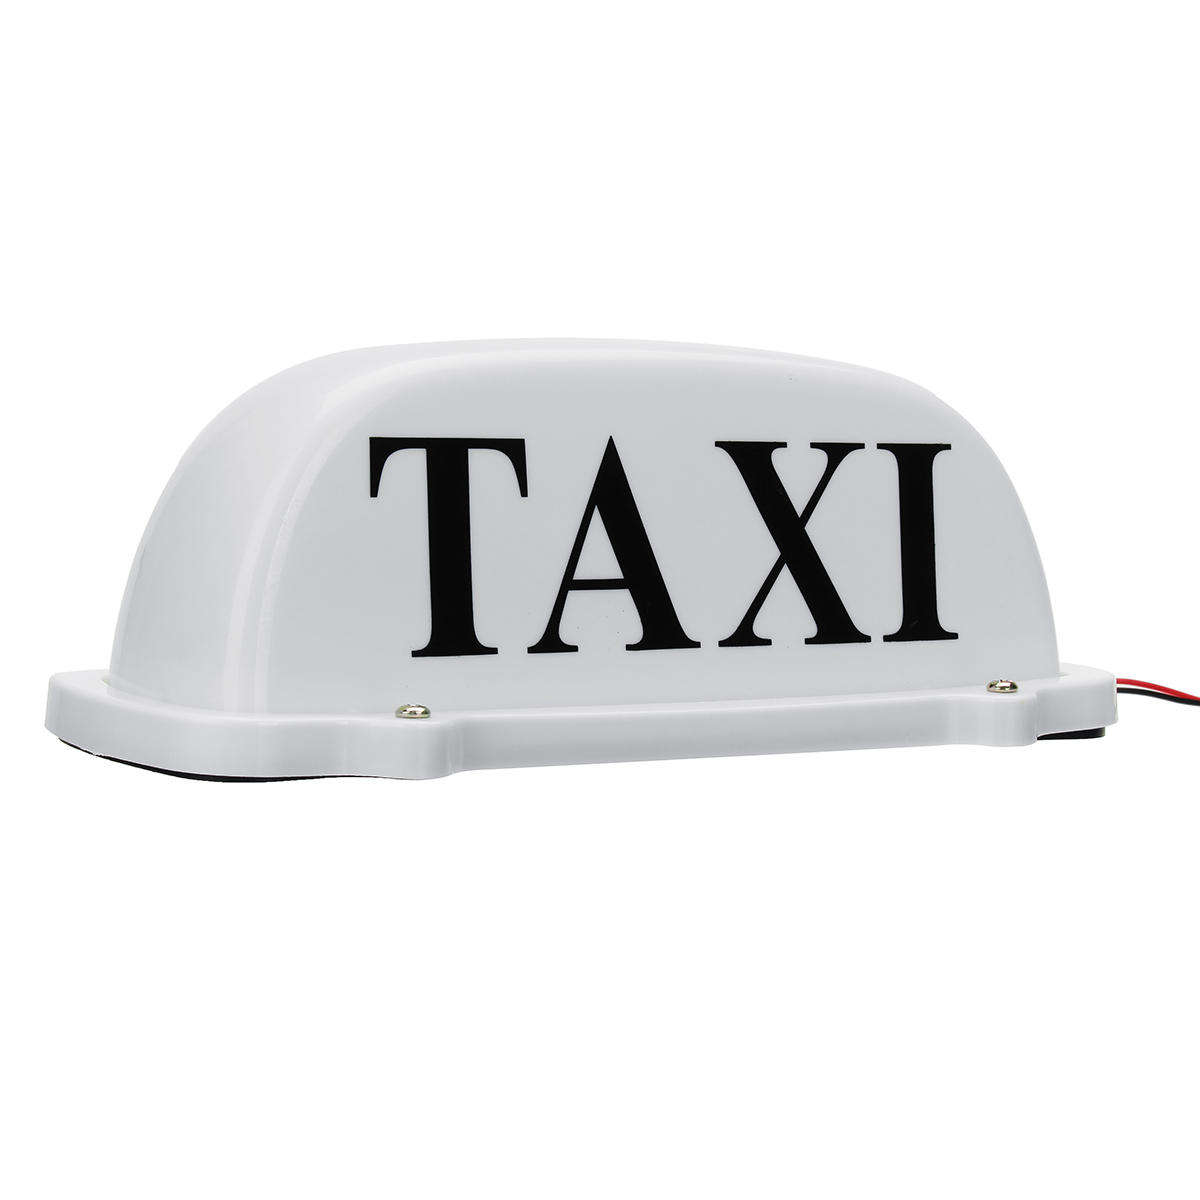 Taxi Roof Top Lamp Light Sign LED Advertising Light Box